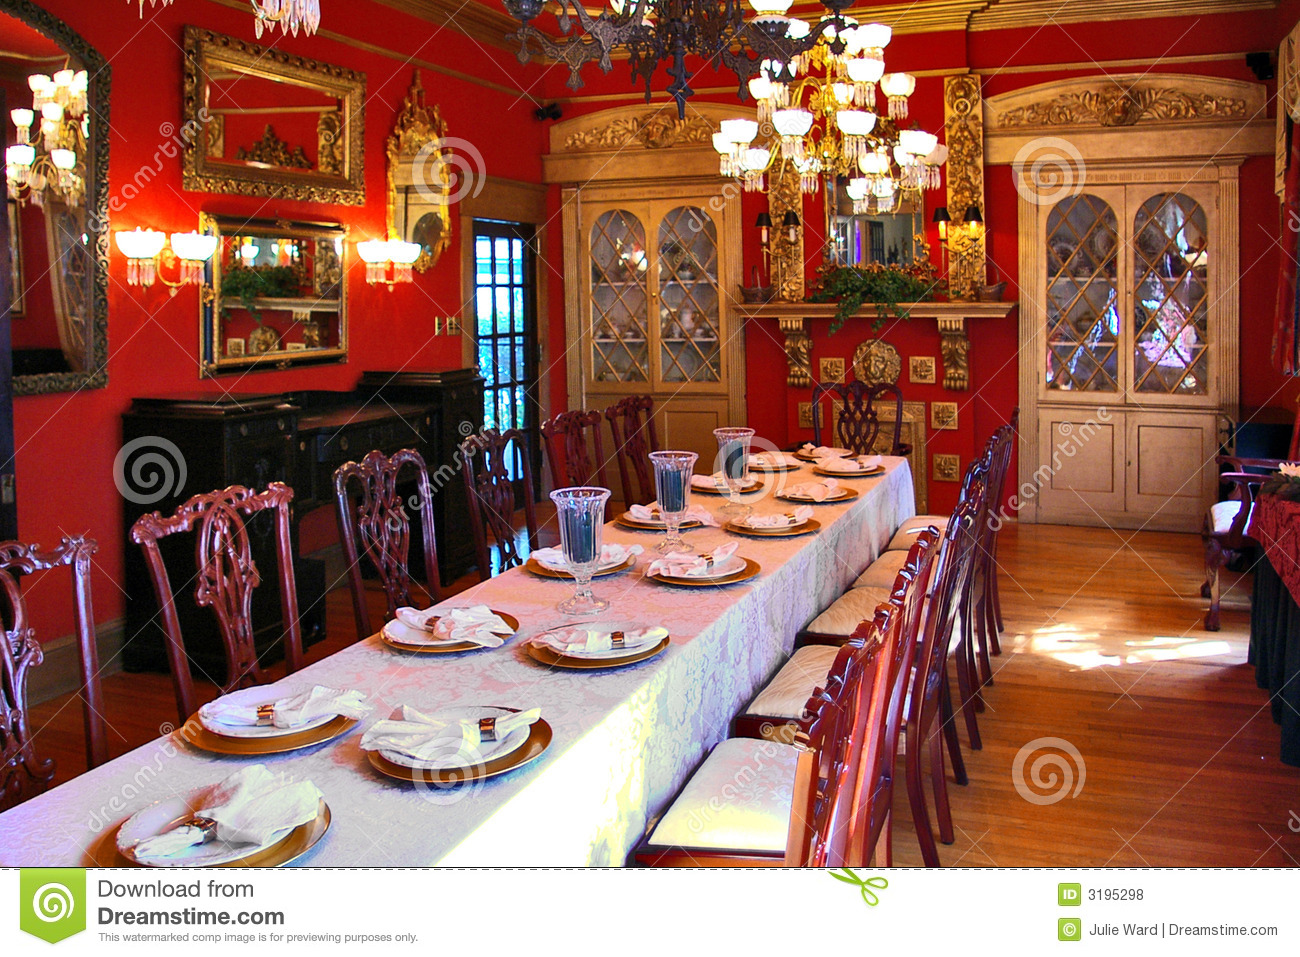 Victorian Banquet Royalty Free Stock Photos Image 3195298